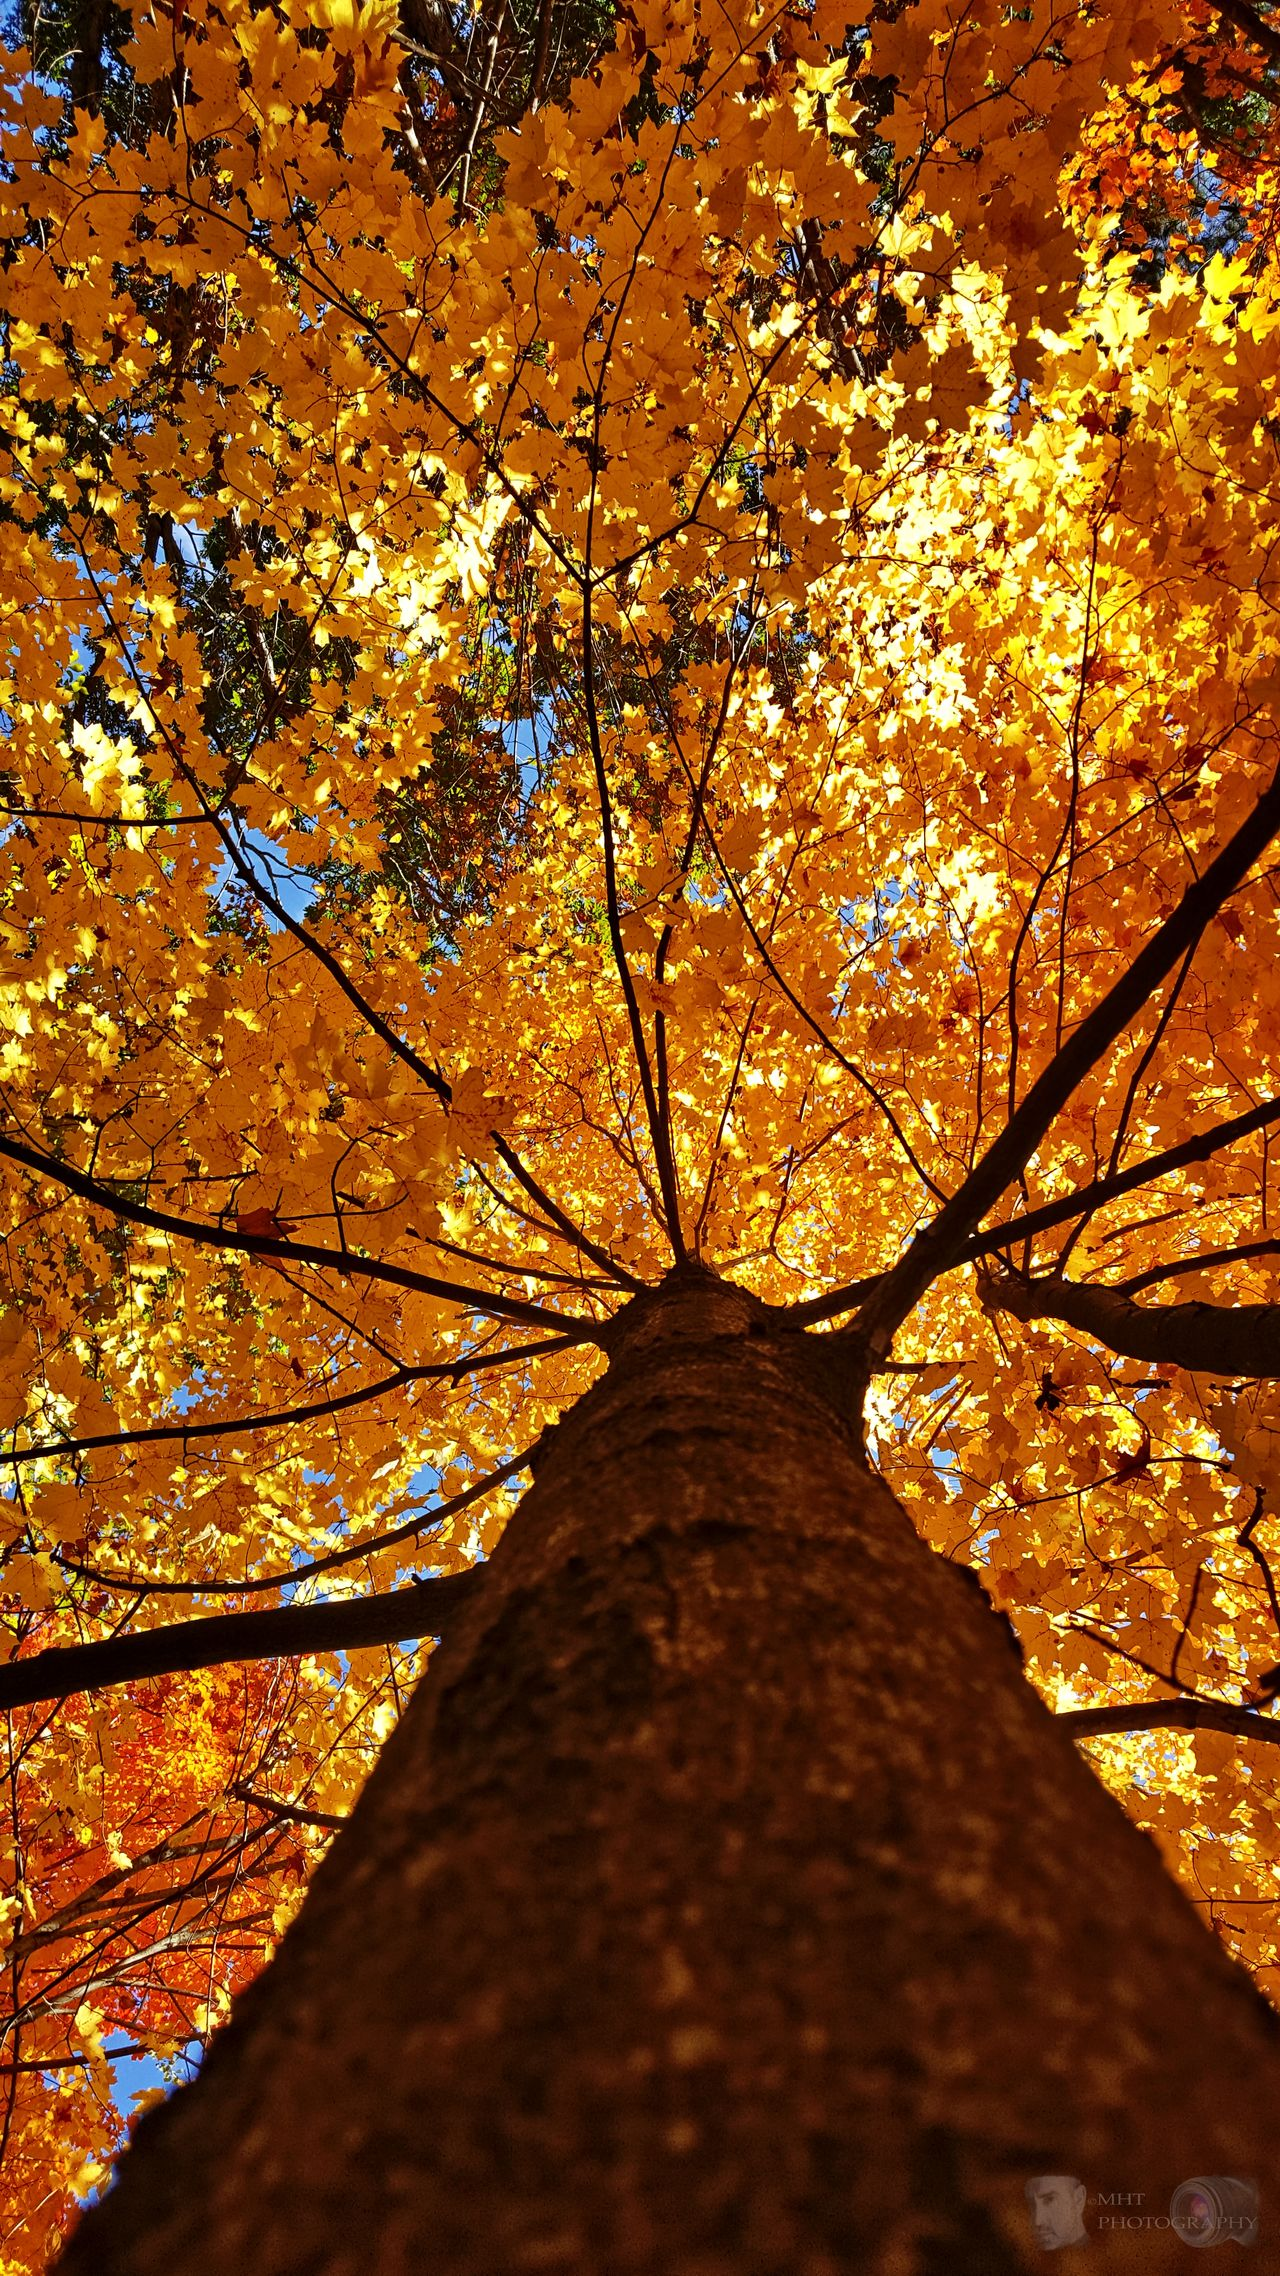 Tree Low Angle View Autumn Beauty In Nature EyeEm Best Shots - Landscape Landscape EyeEm Autumn Collection Fall Colors Fall Beauty Nature Good Morning! Scenics